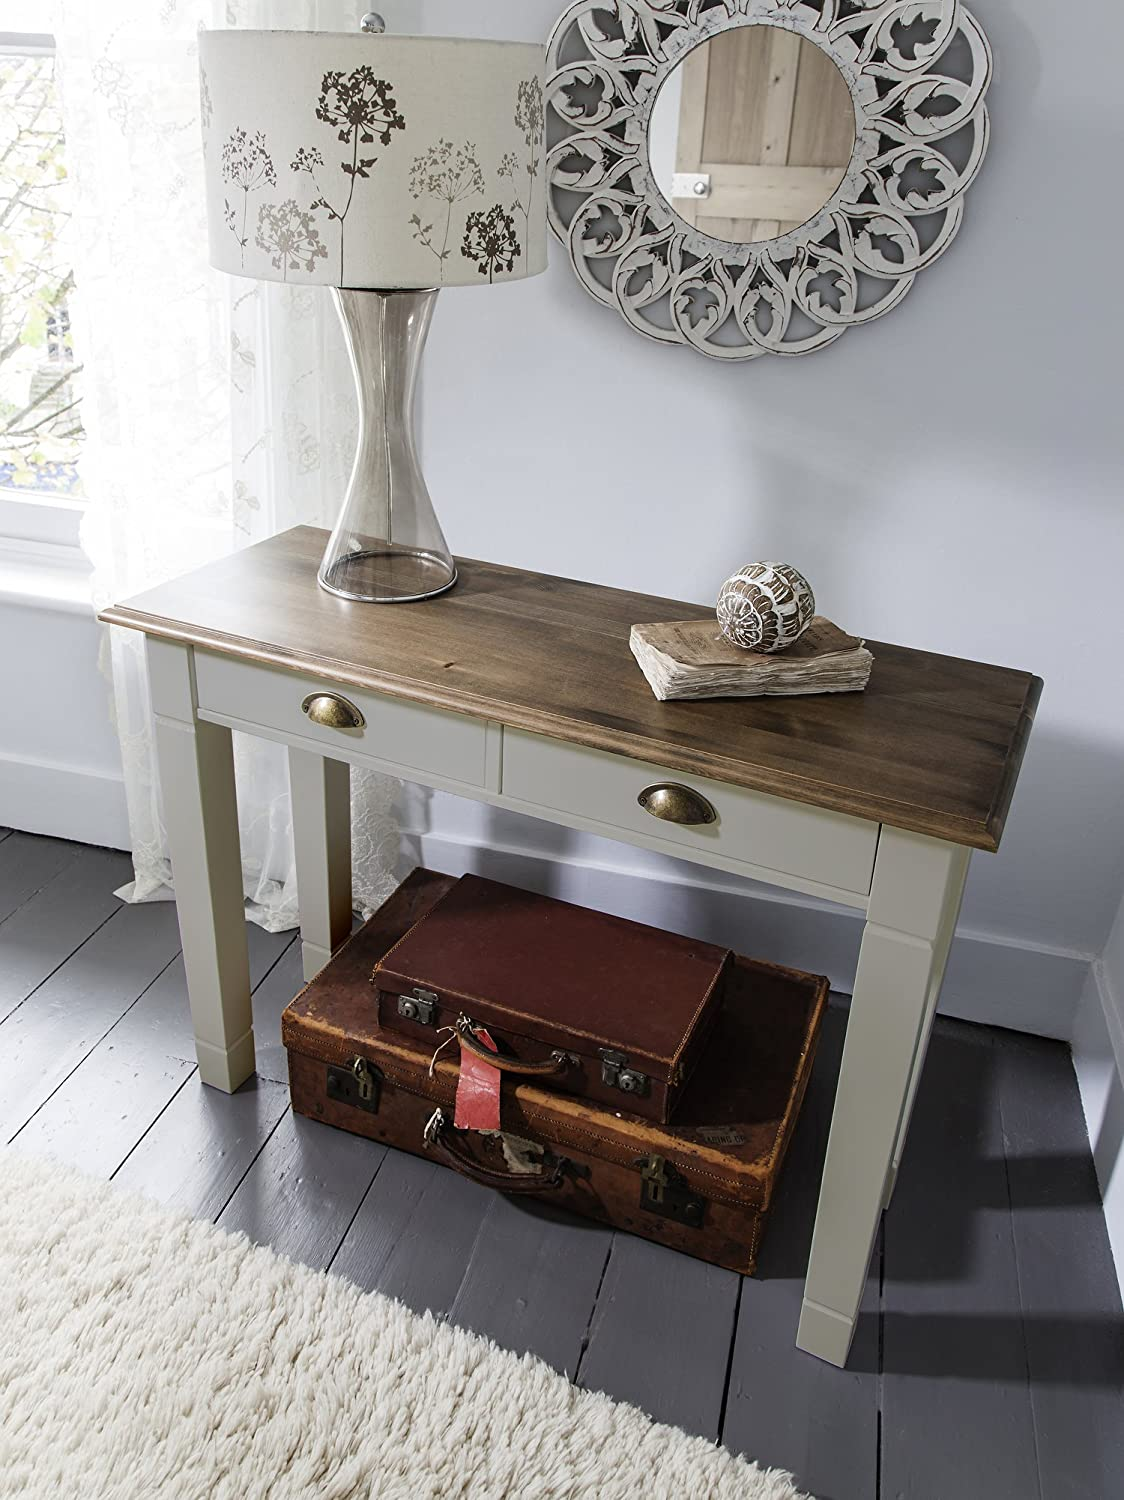 Superior Canterbury Console Table In Dark Pine And Silk Grey Noa U0026 Nani:  Amazon.co.uk: Kitchen U0026 Home